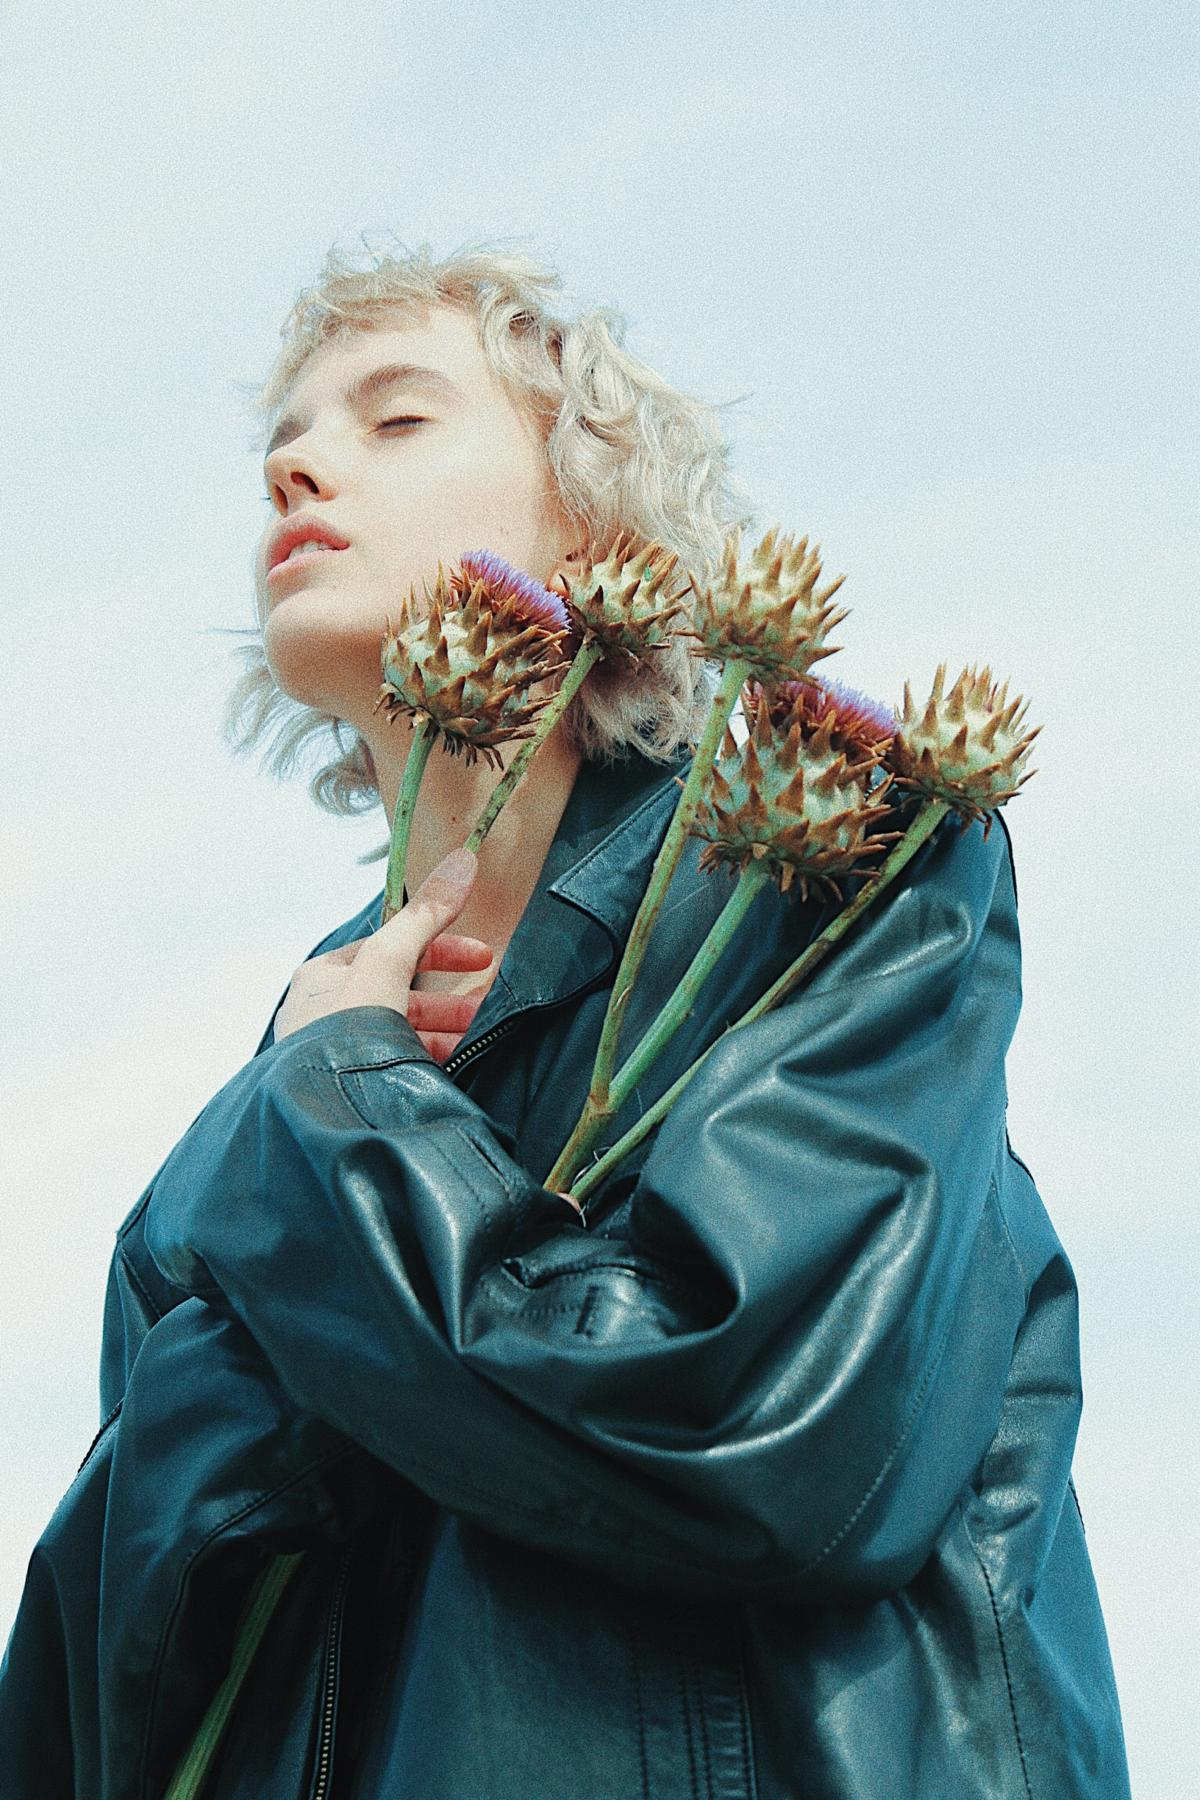 Woman Wearing Green Leather Jacket Holding Flowers